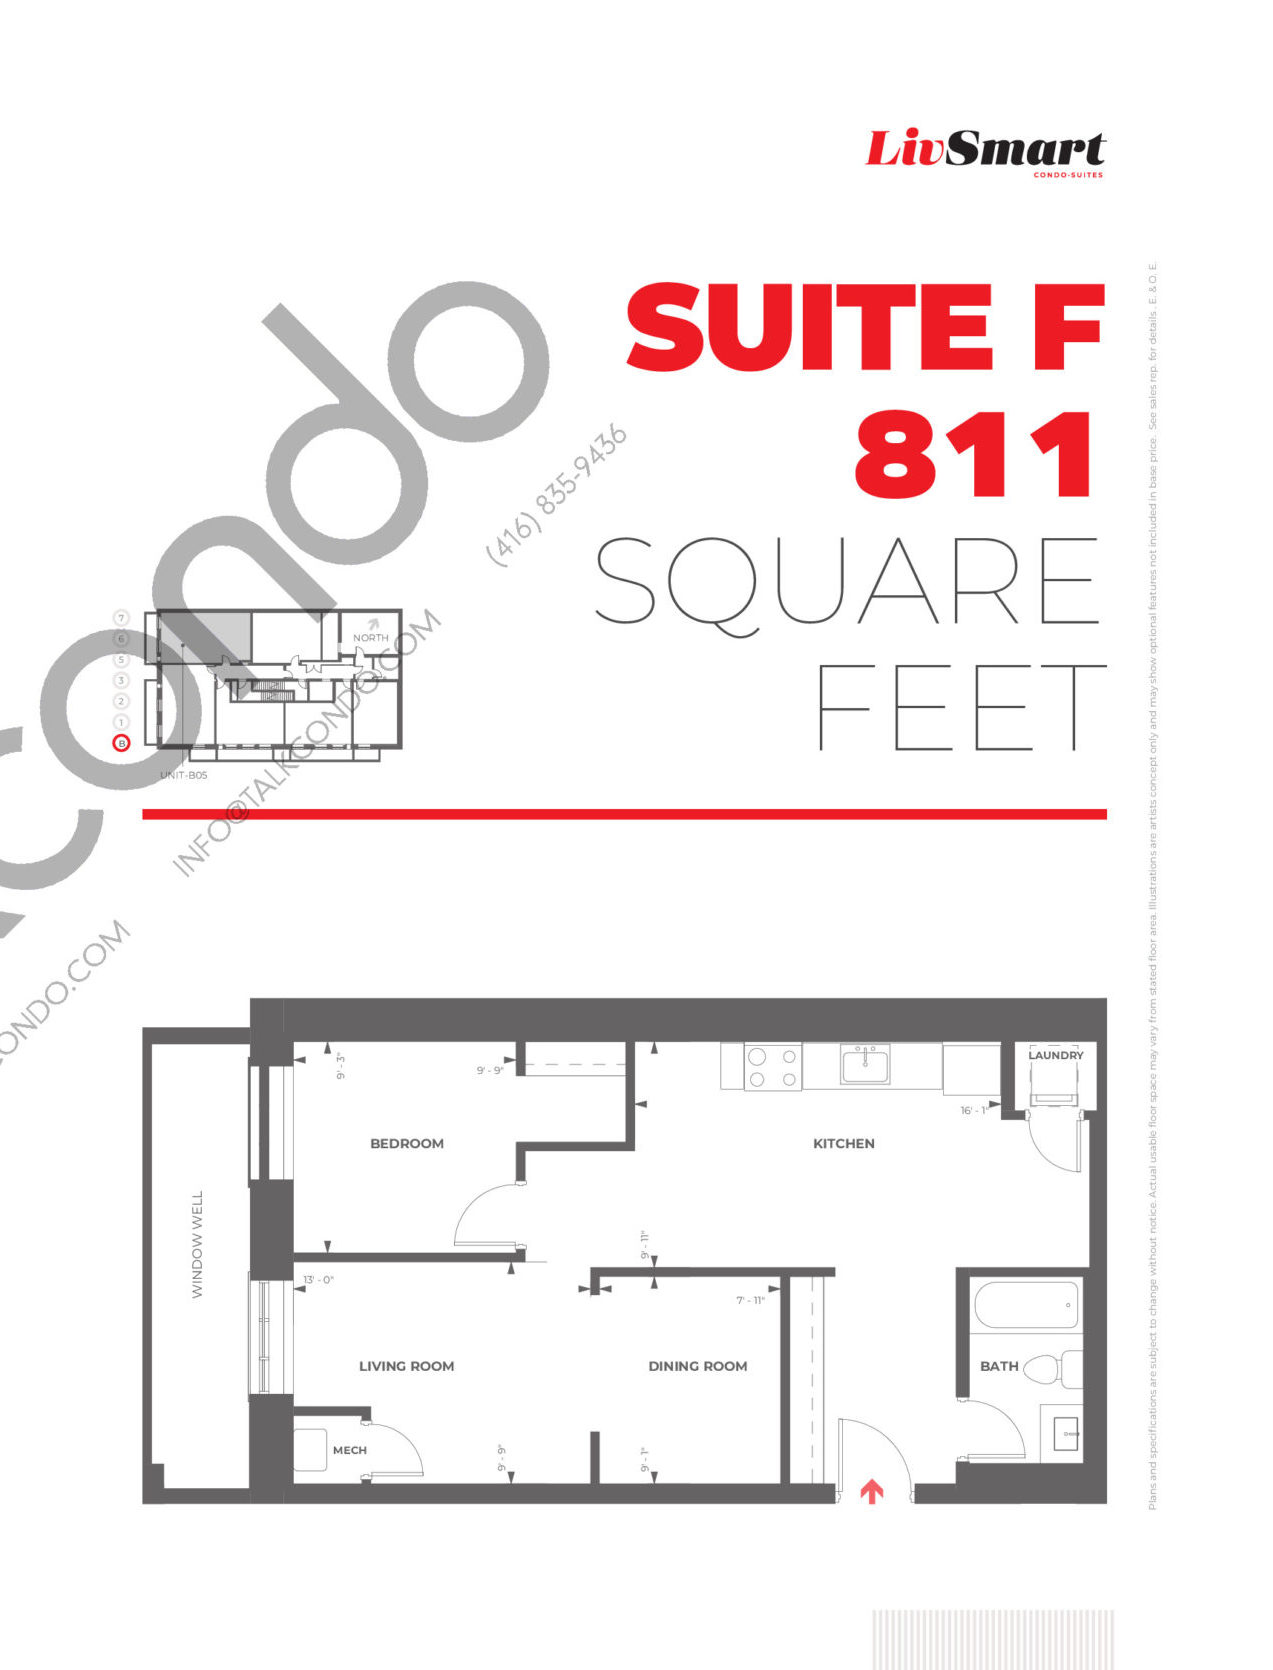 Suite F Floor Plan at LivSmart Condos - 811 sq.ft